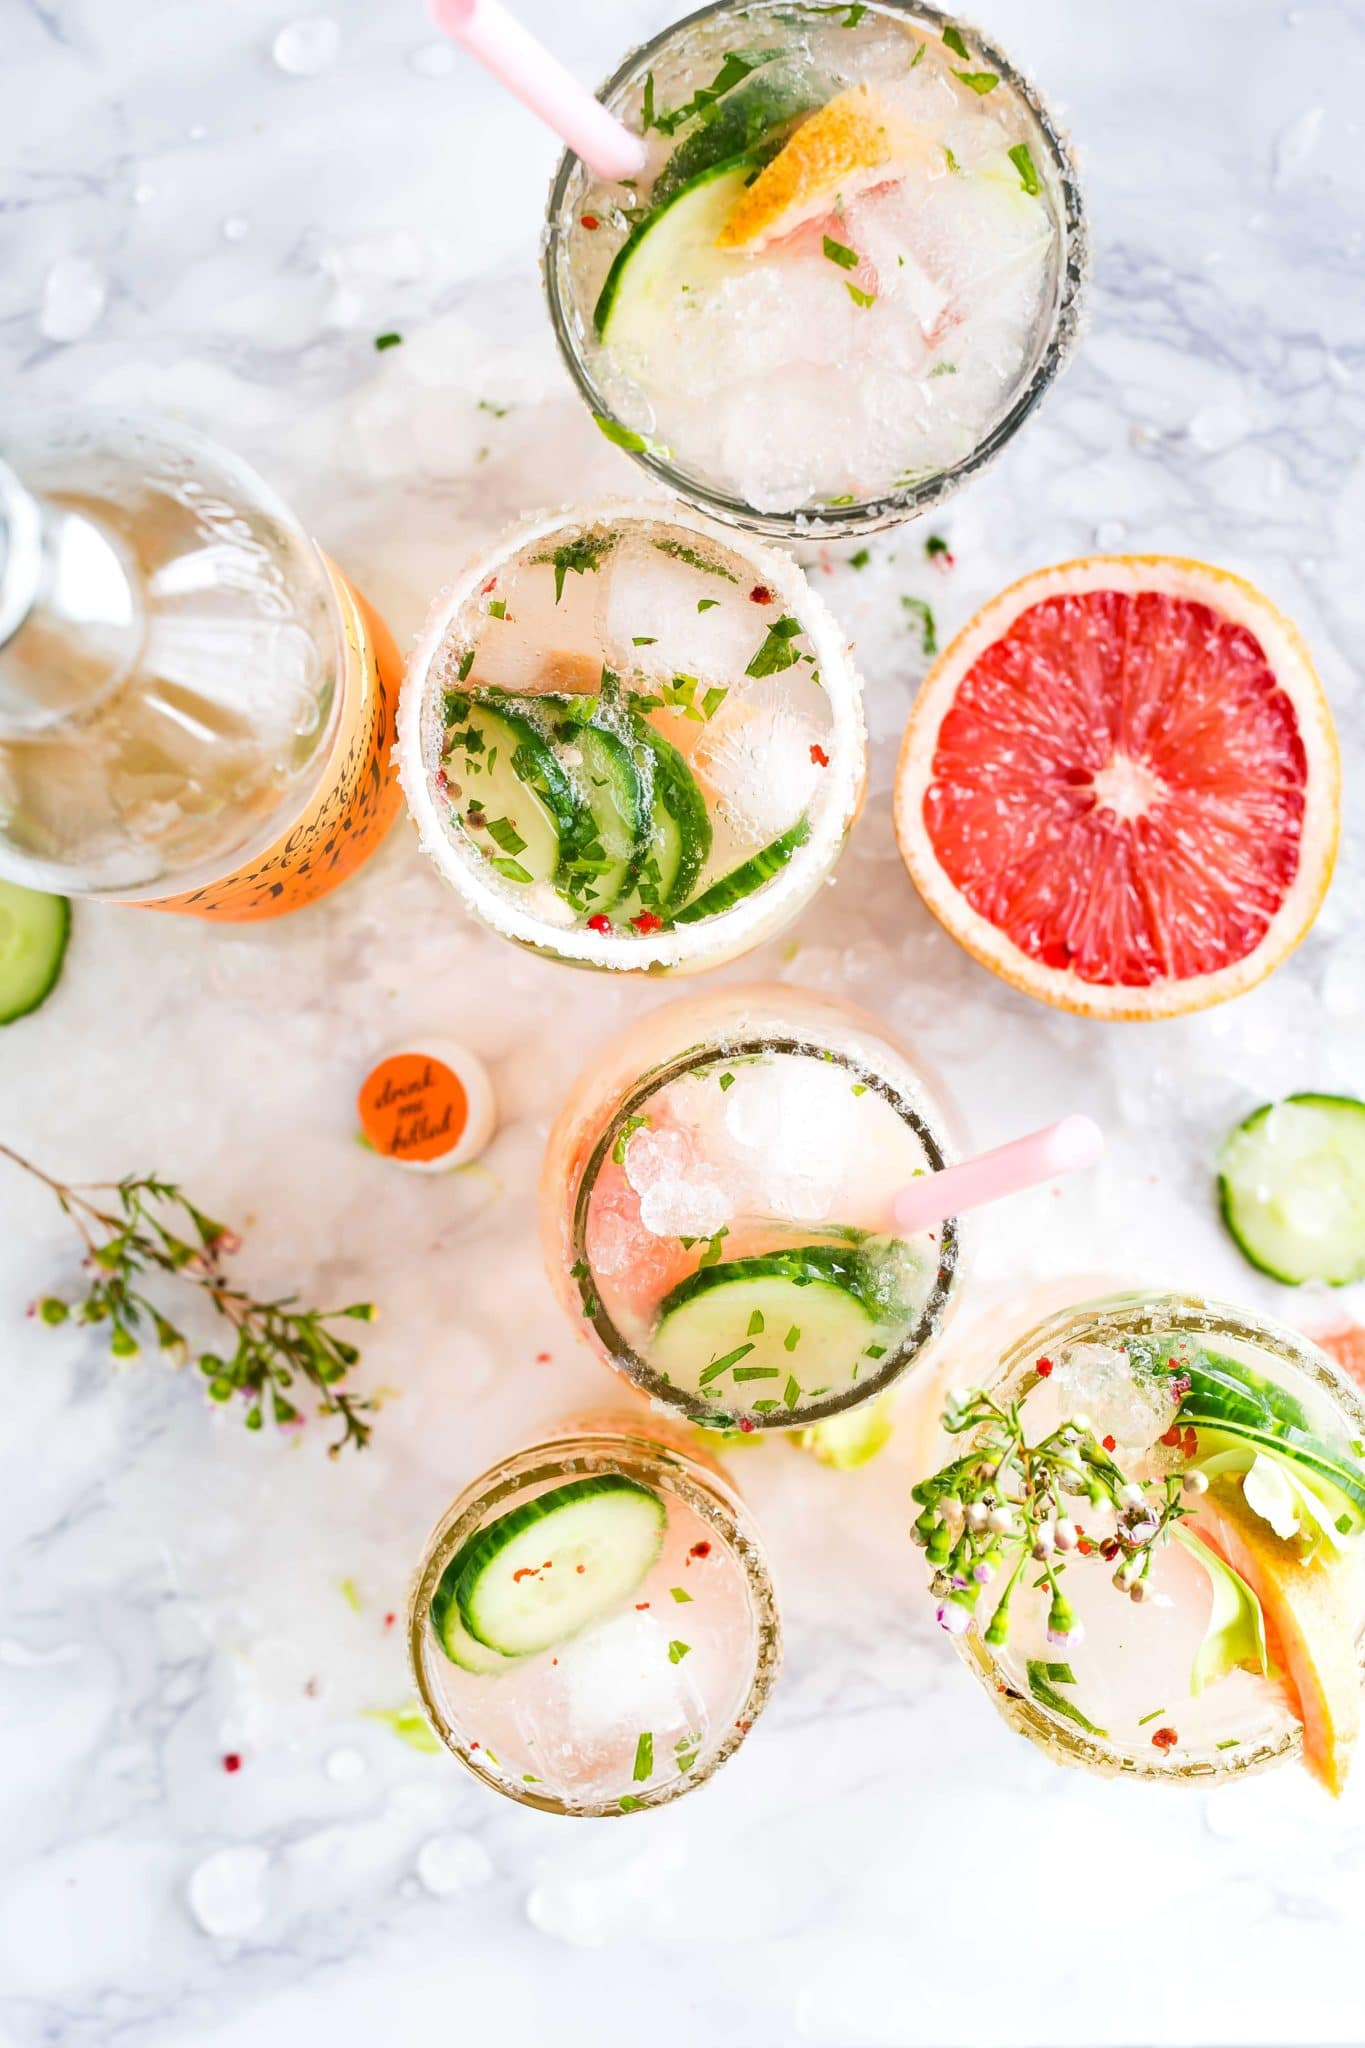 birds eye image of multiple cocktails garnished with fresh herbs, cucumbers, and grapefruit against a white marble background